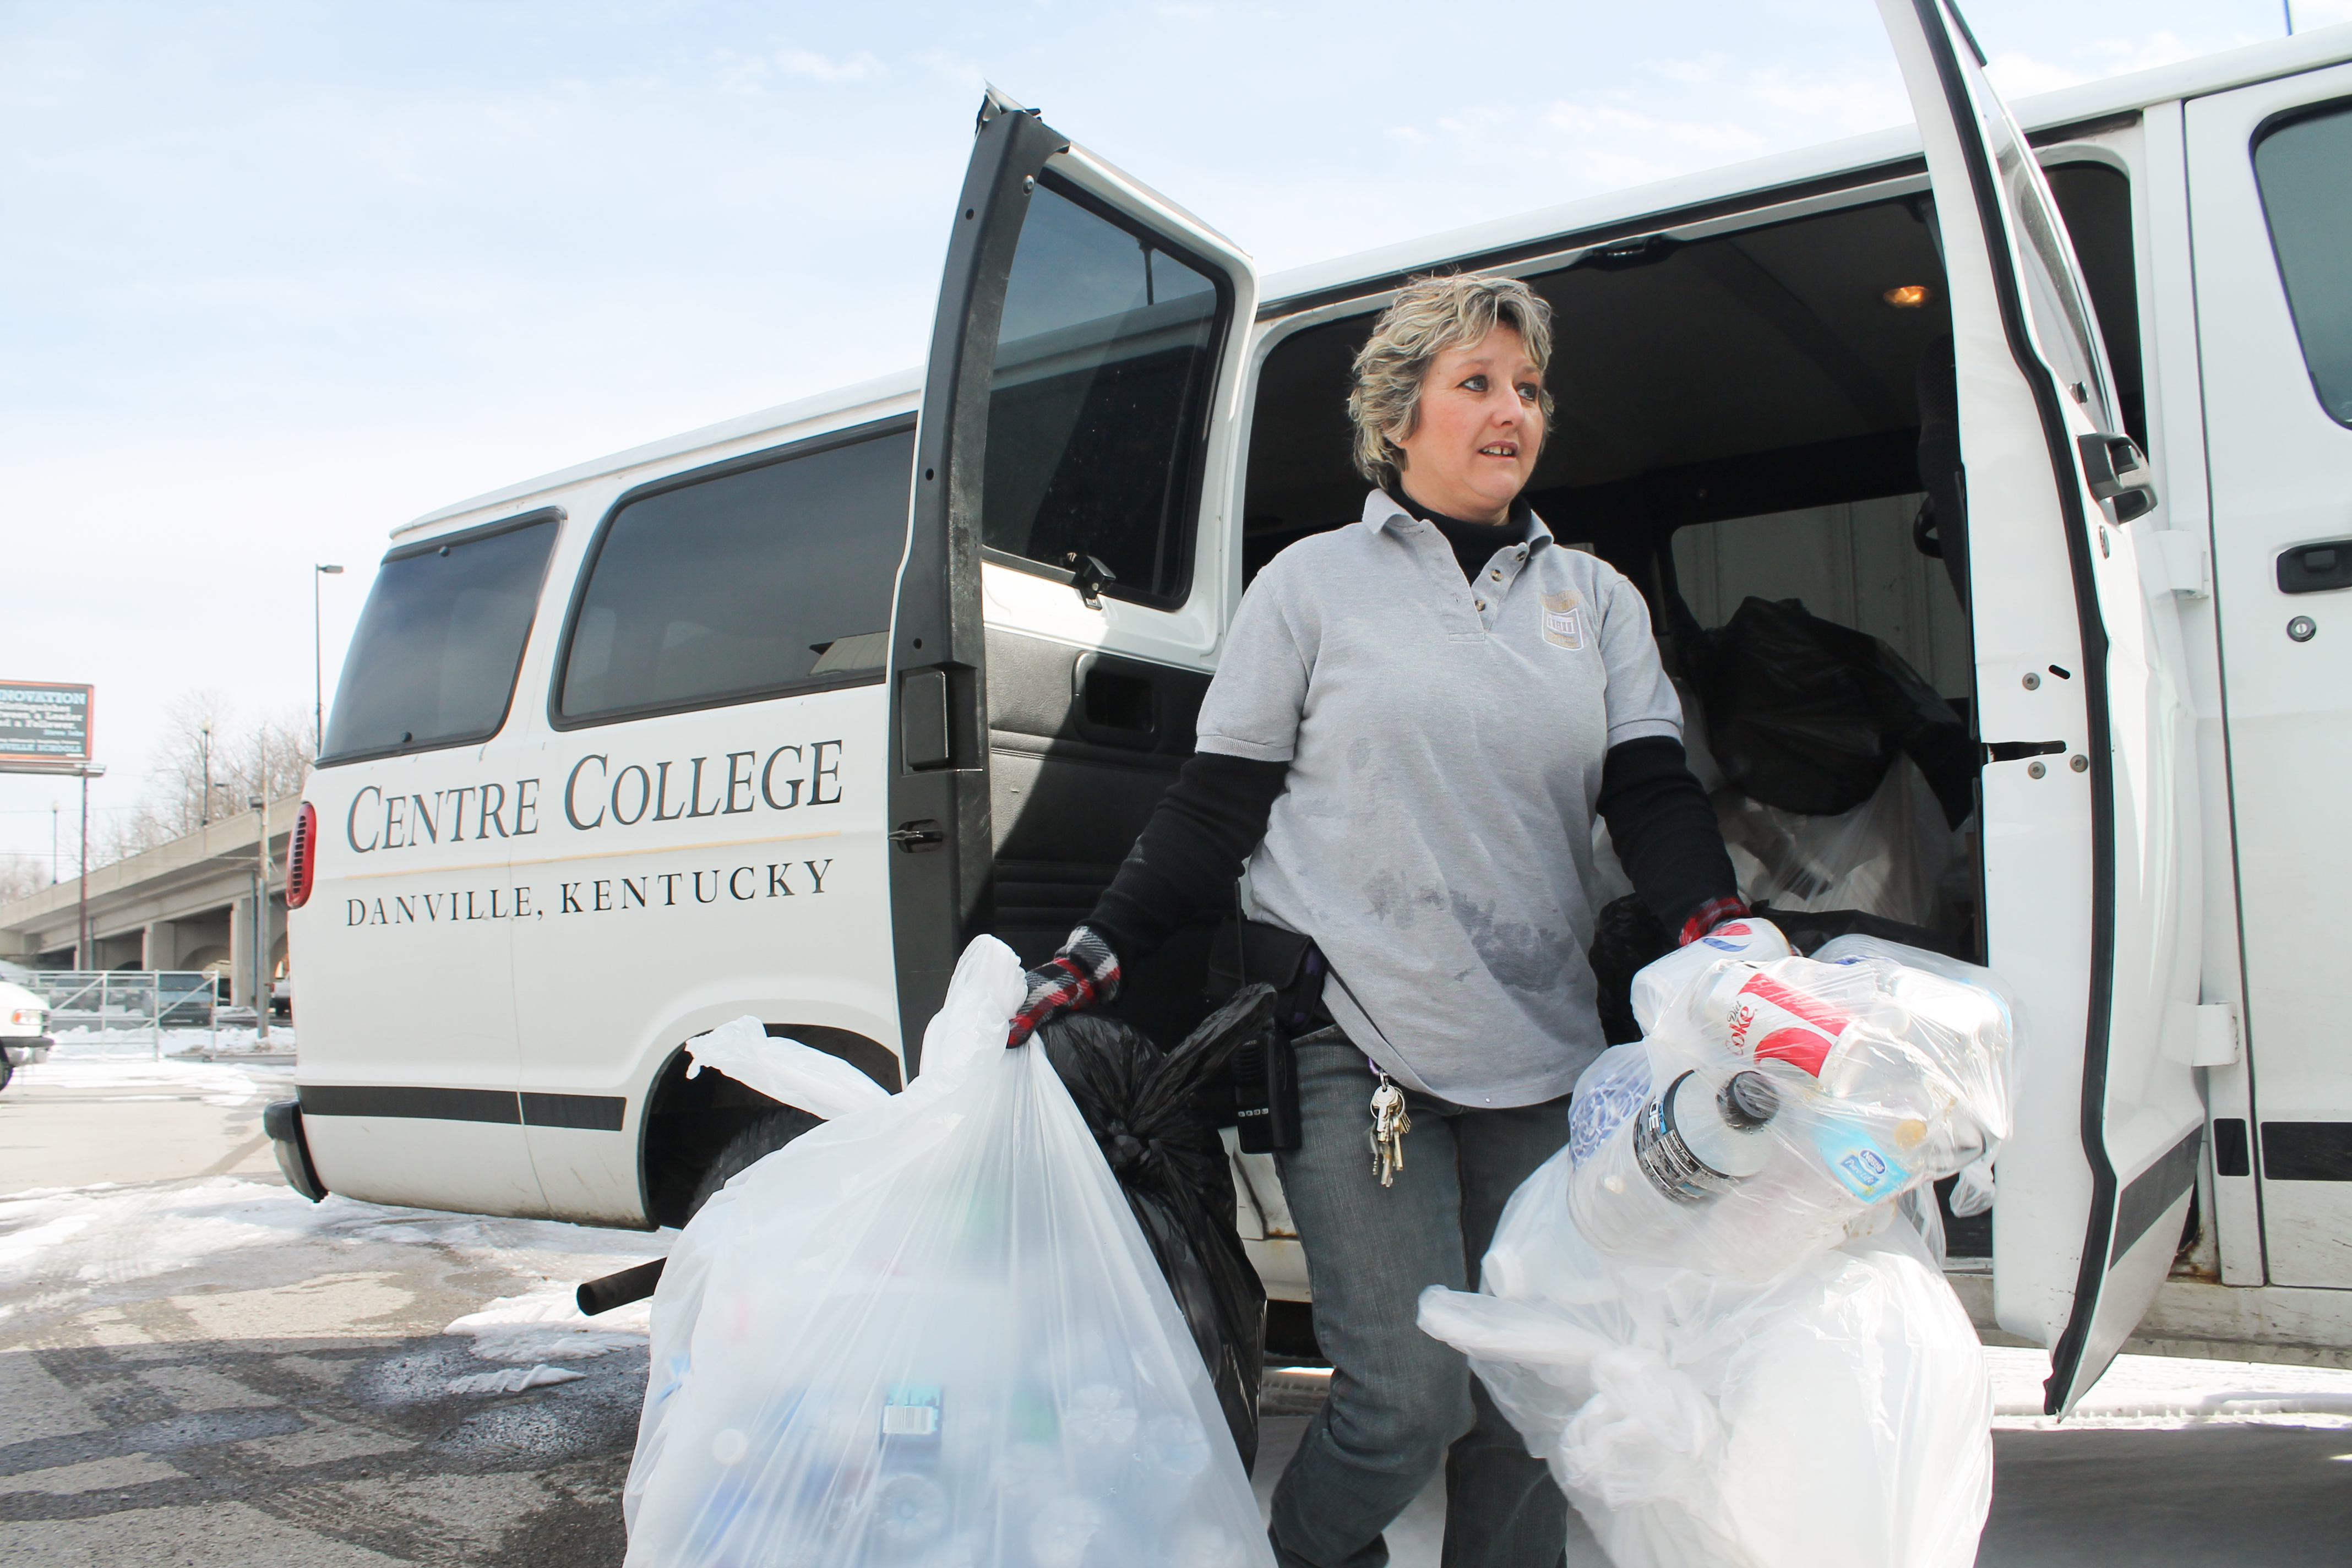 Recyclemania competition returns to Centre College for spring semester